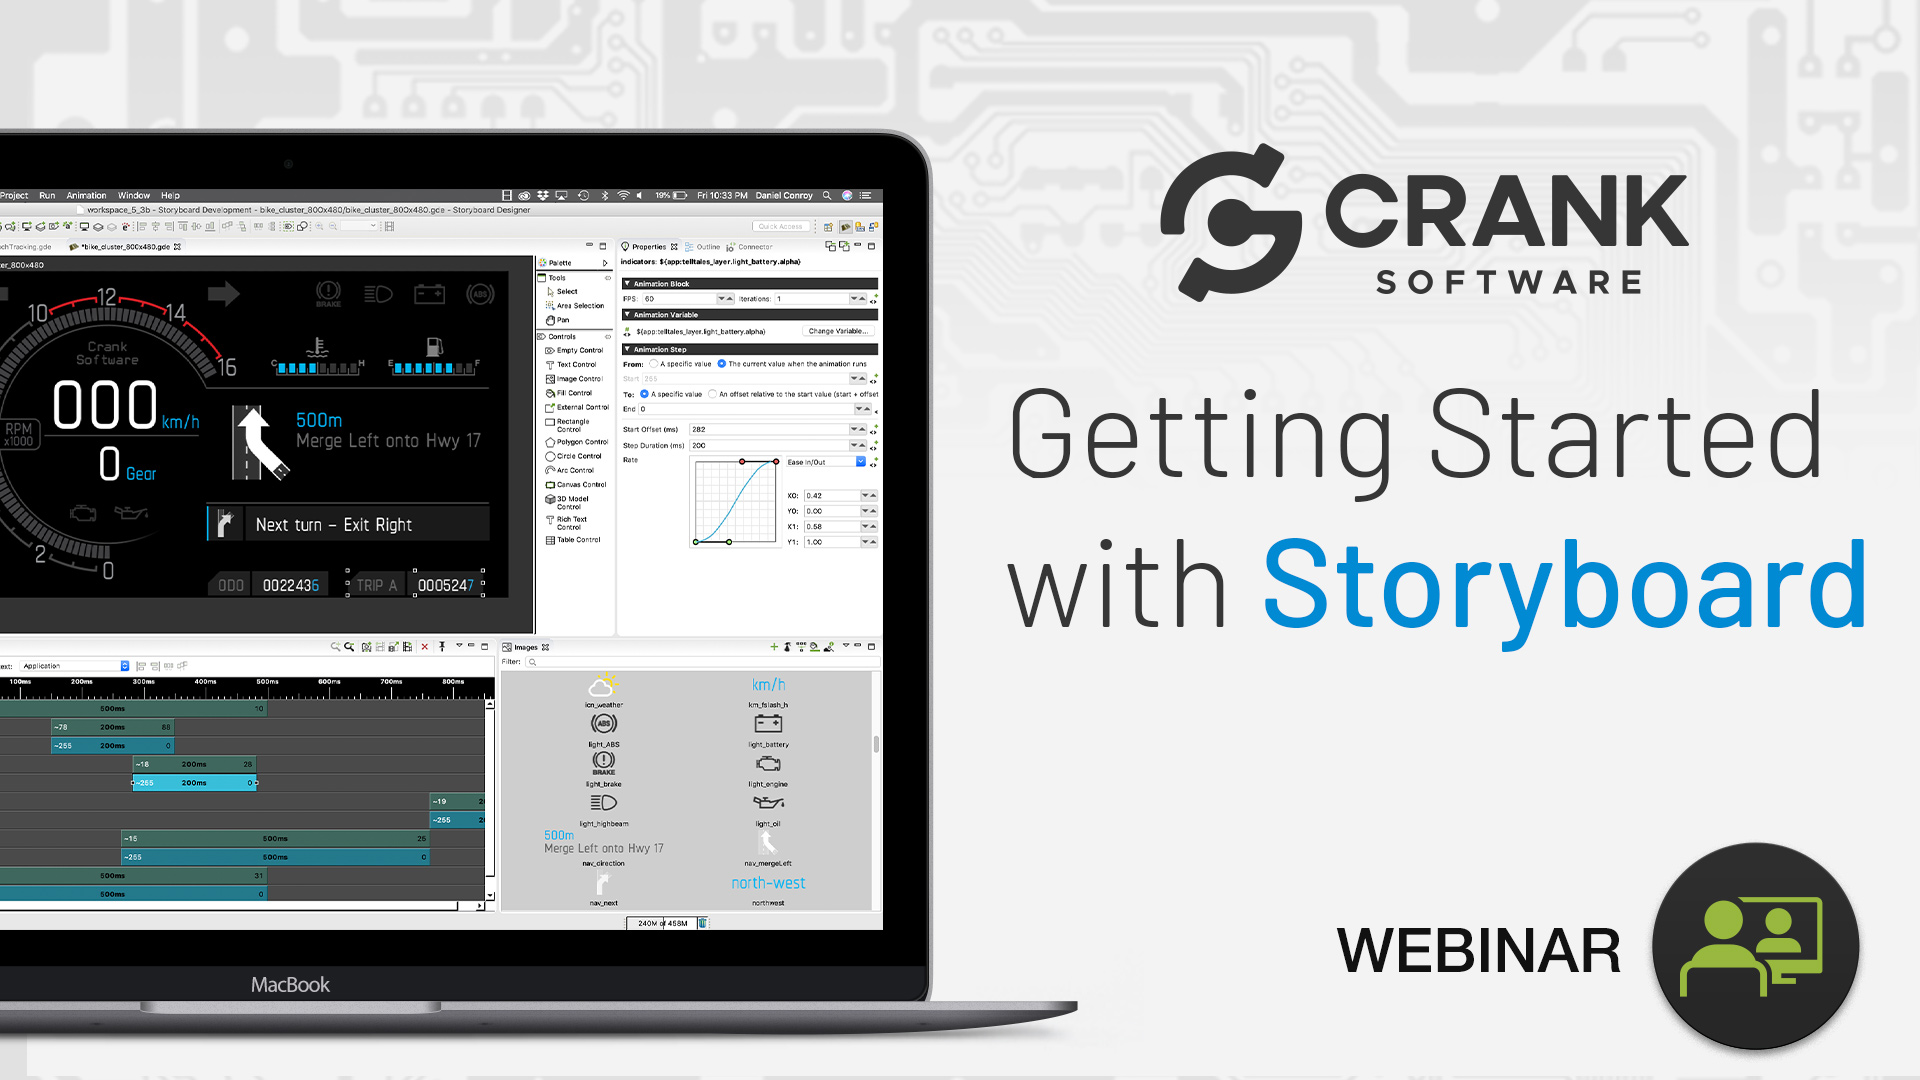 webinar-crank-software-getting-started-storyboard-march-2020